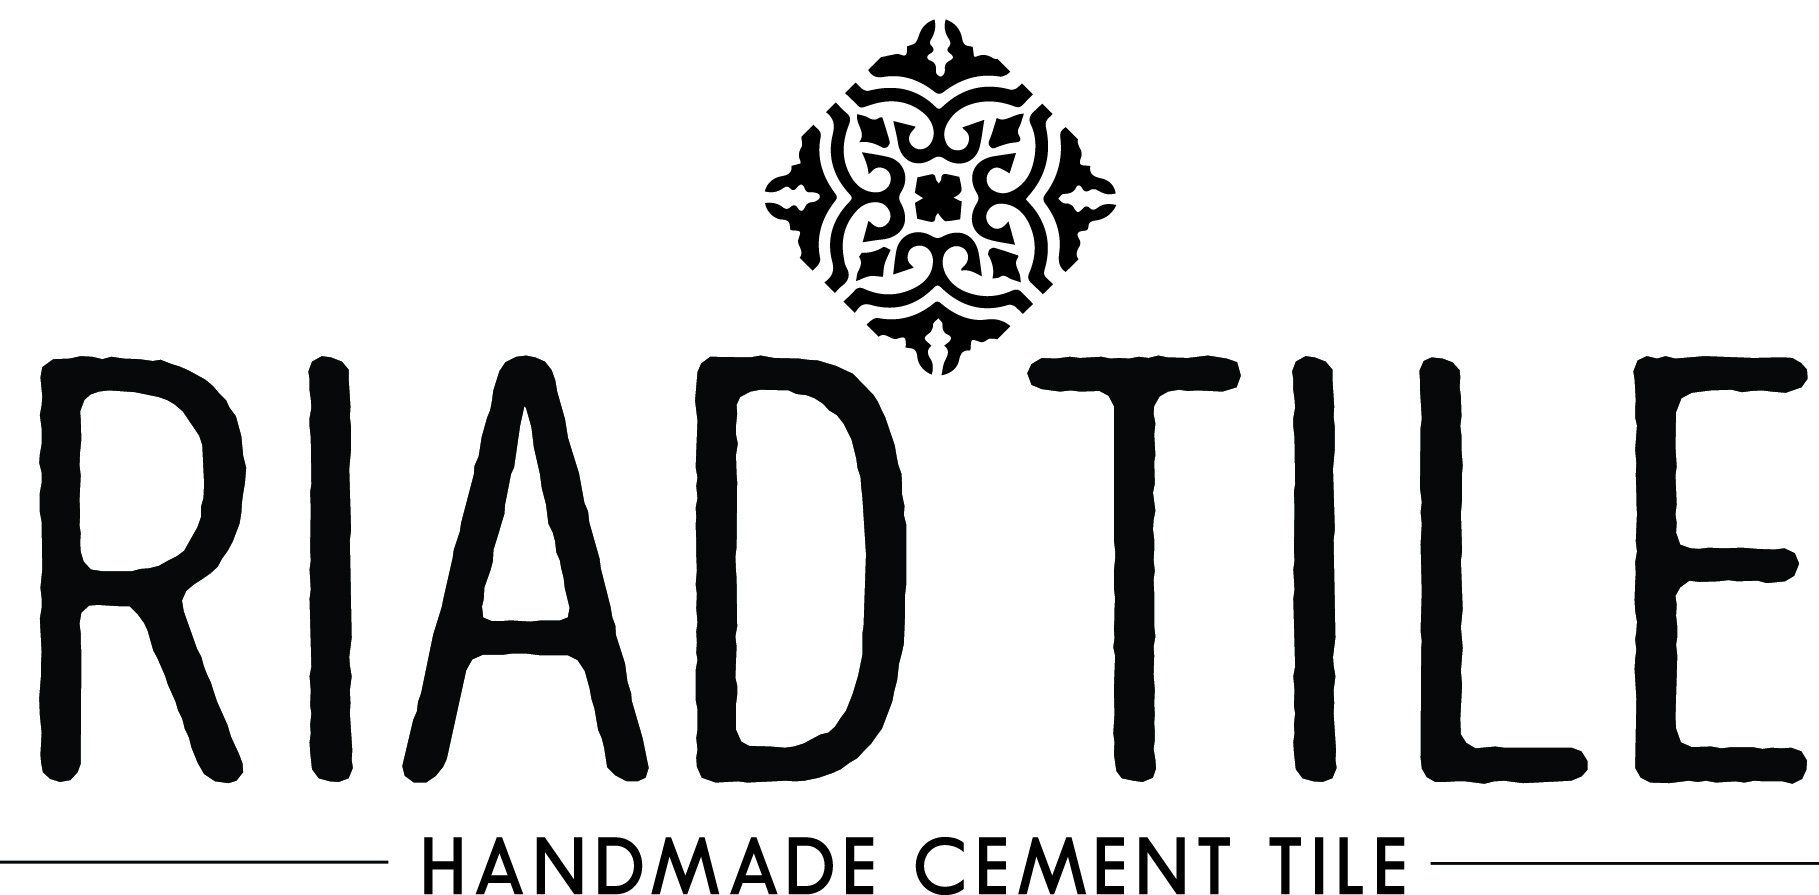 Tour of Homes - Riad Tile logo